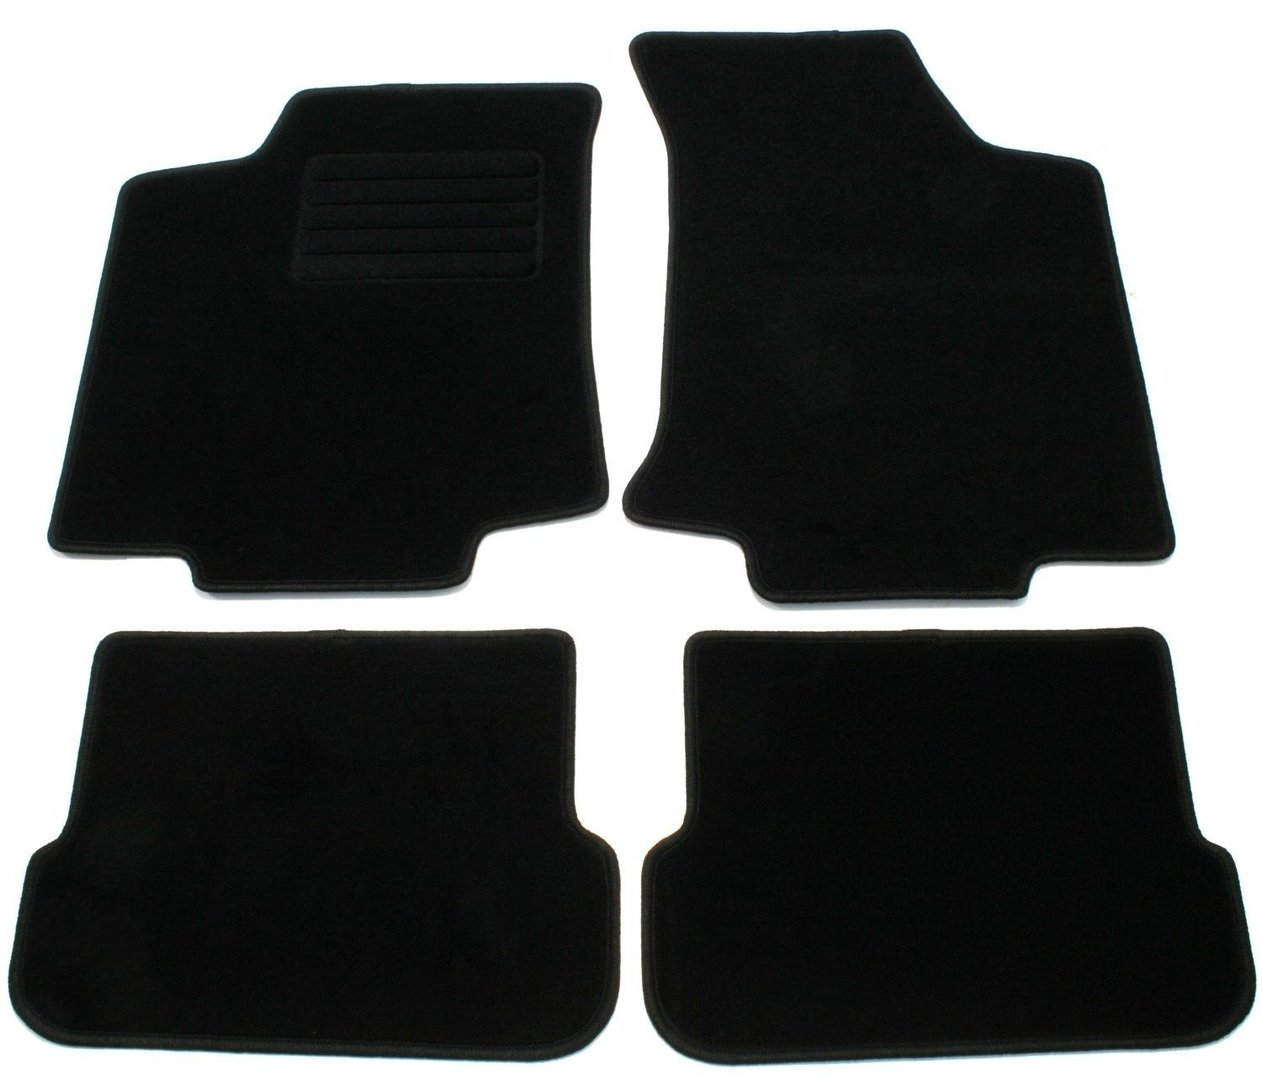 4 tapis de sol en velours pour vw golf 3 sur mesure. Black Bedroom Furniture Sets. Home Design Ideas